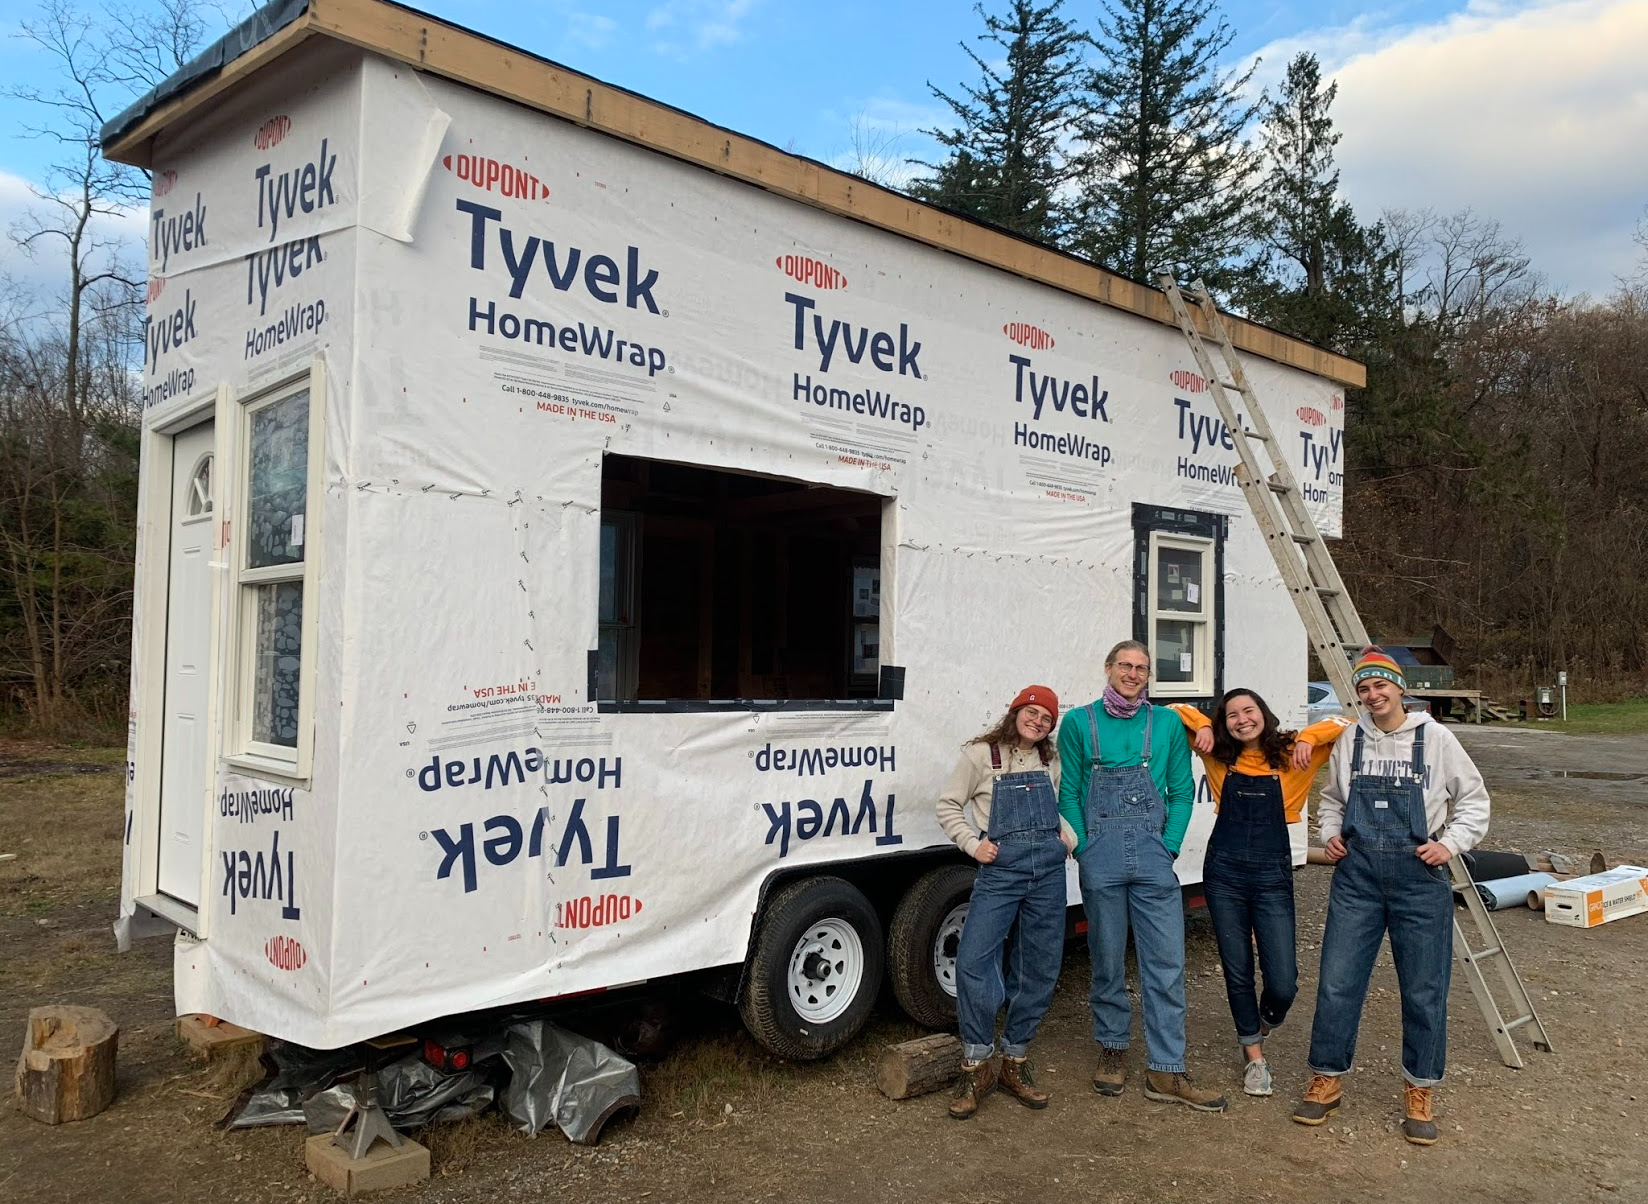 Students (from left) Diana Biesecker '22, Zach de Besche '22, Julia Sharapi '22, and Nicole Melnick '23 in front of the tiny house they constructed during the fall 2020 semester (Photo courtesy of Julia Sharapi)